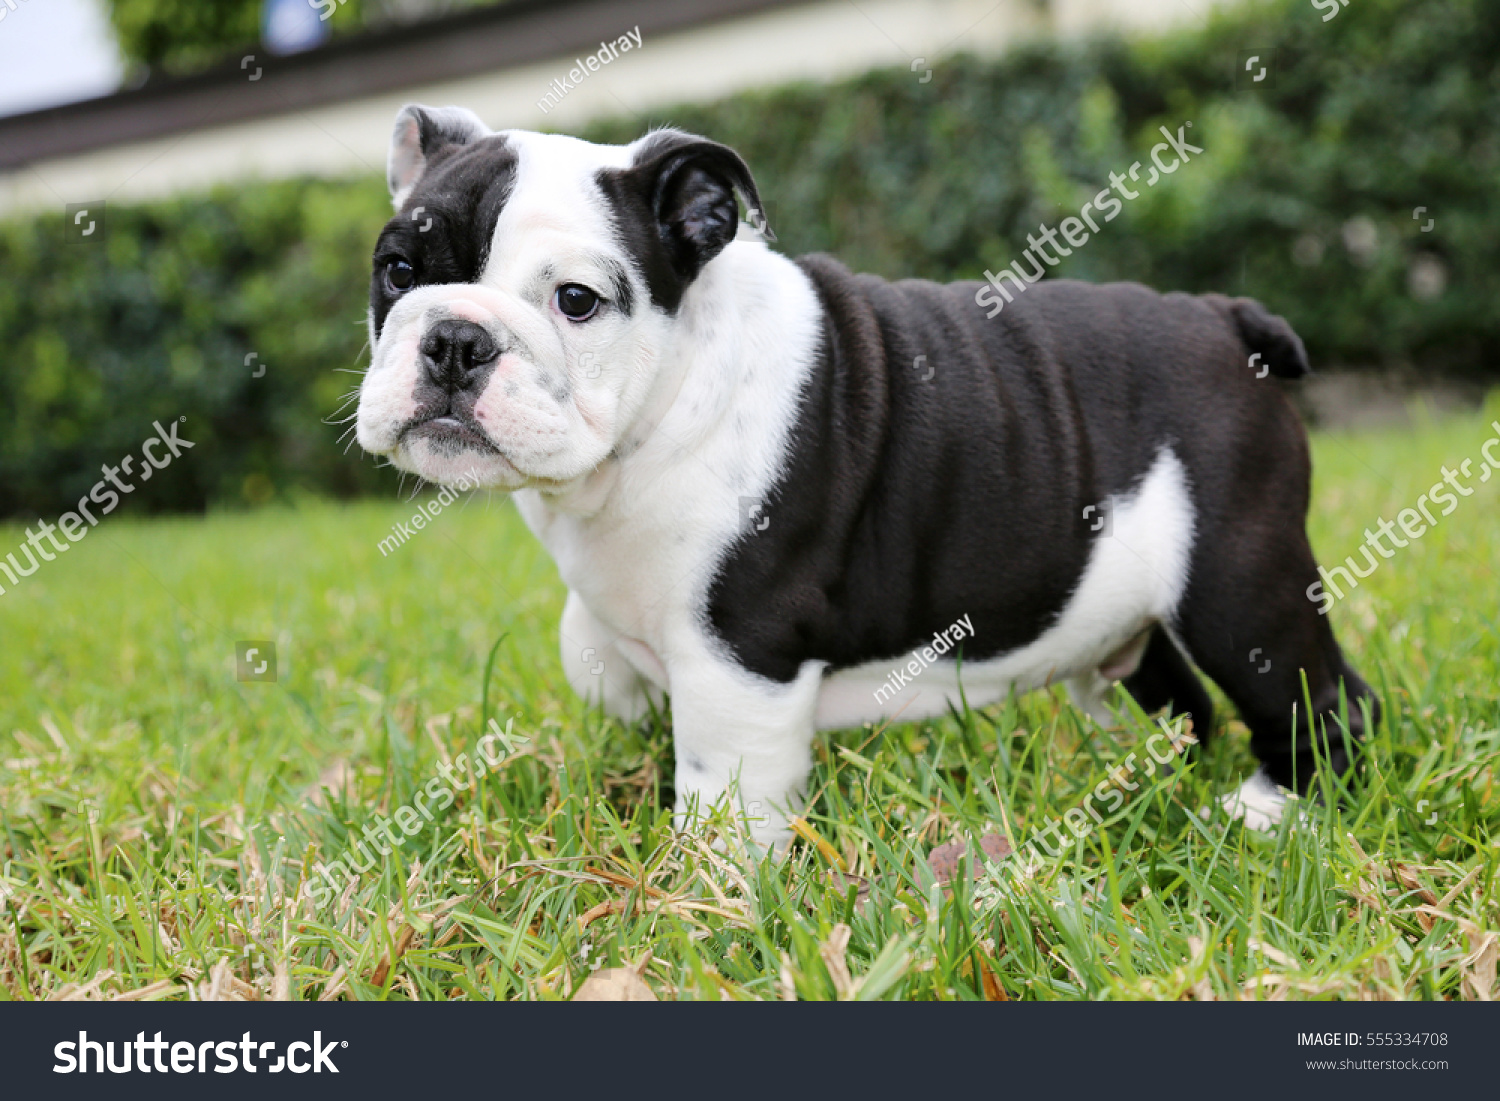 Bulldog Puppy Beautiful Black White Bulldog Foto De Stock Editar Ahora 555334708